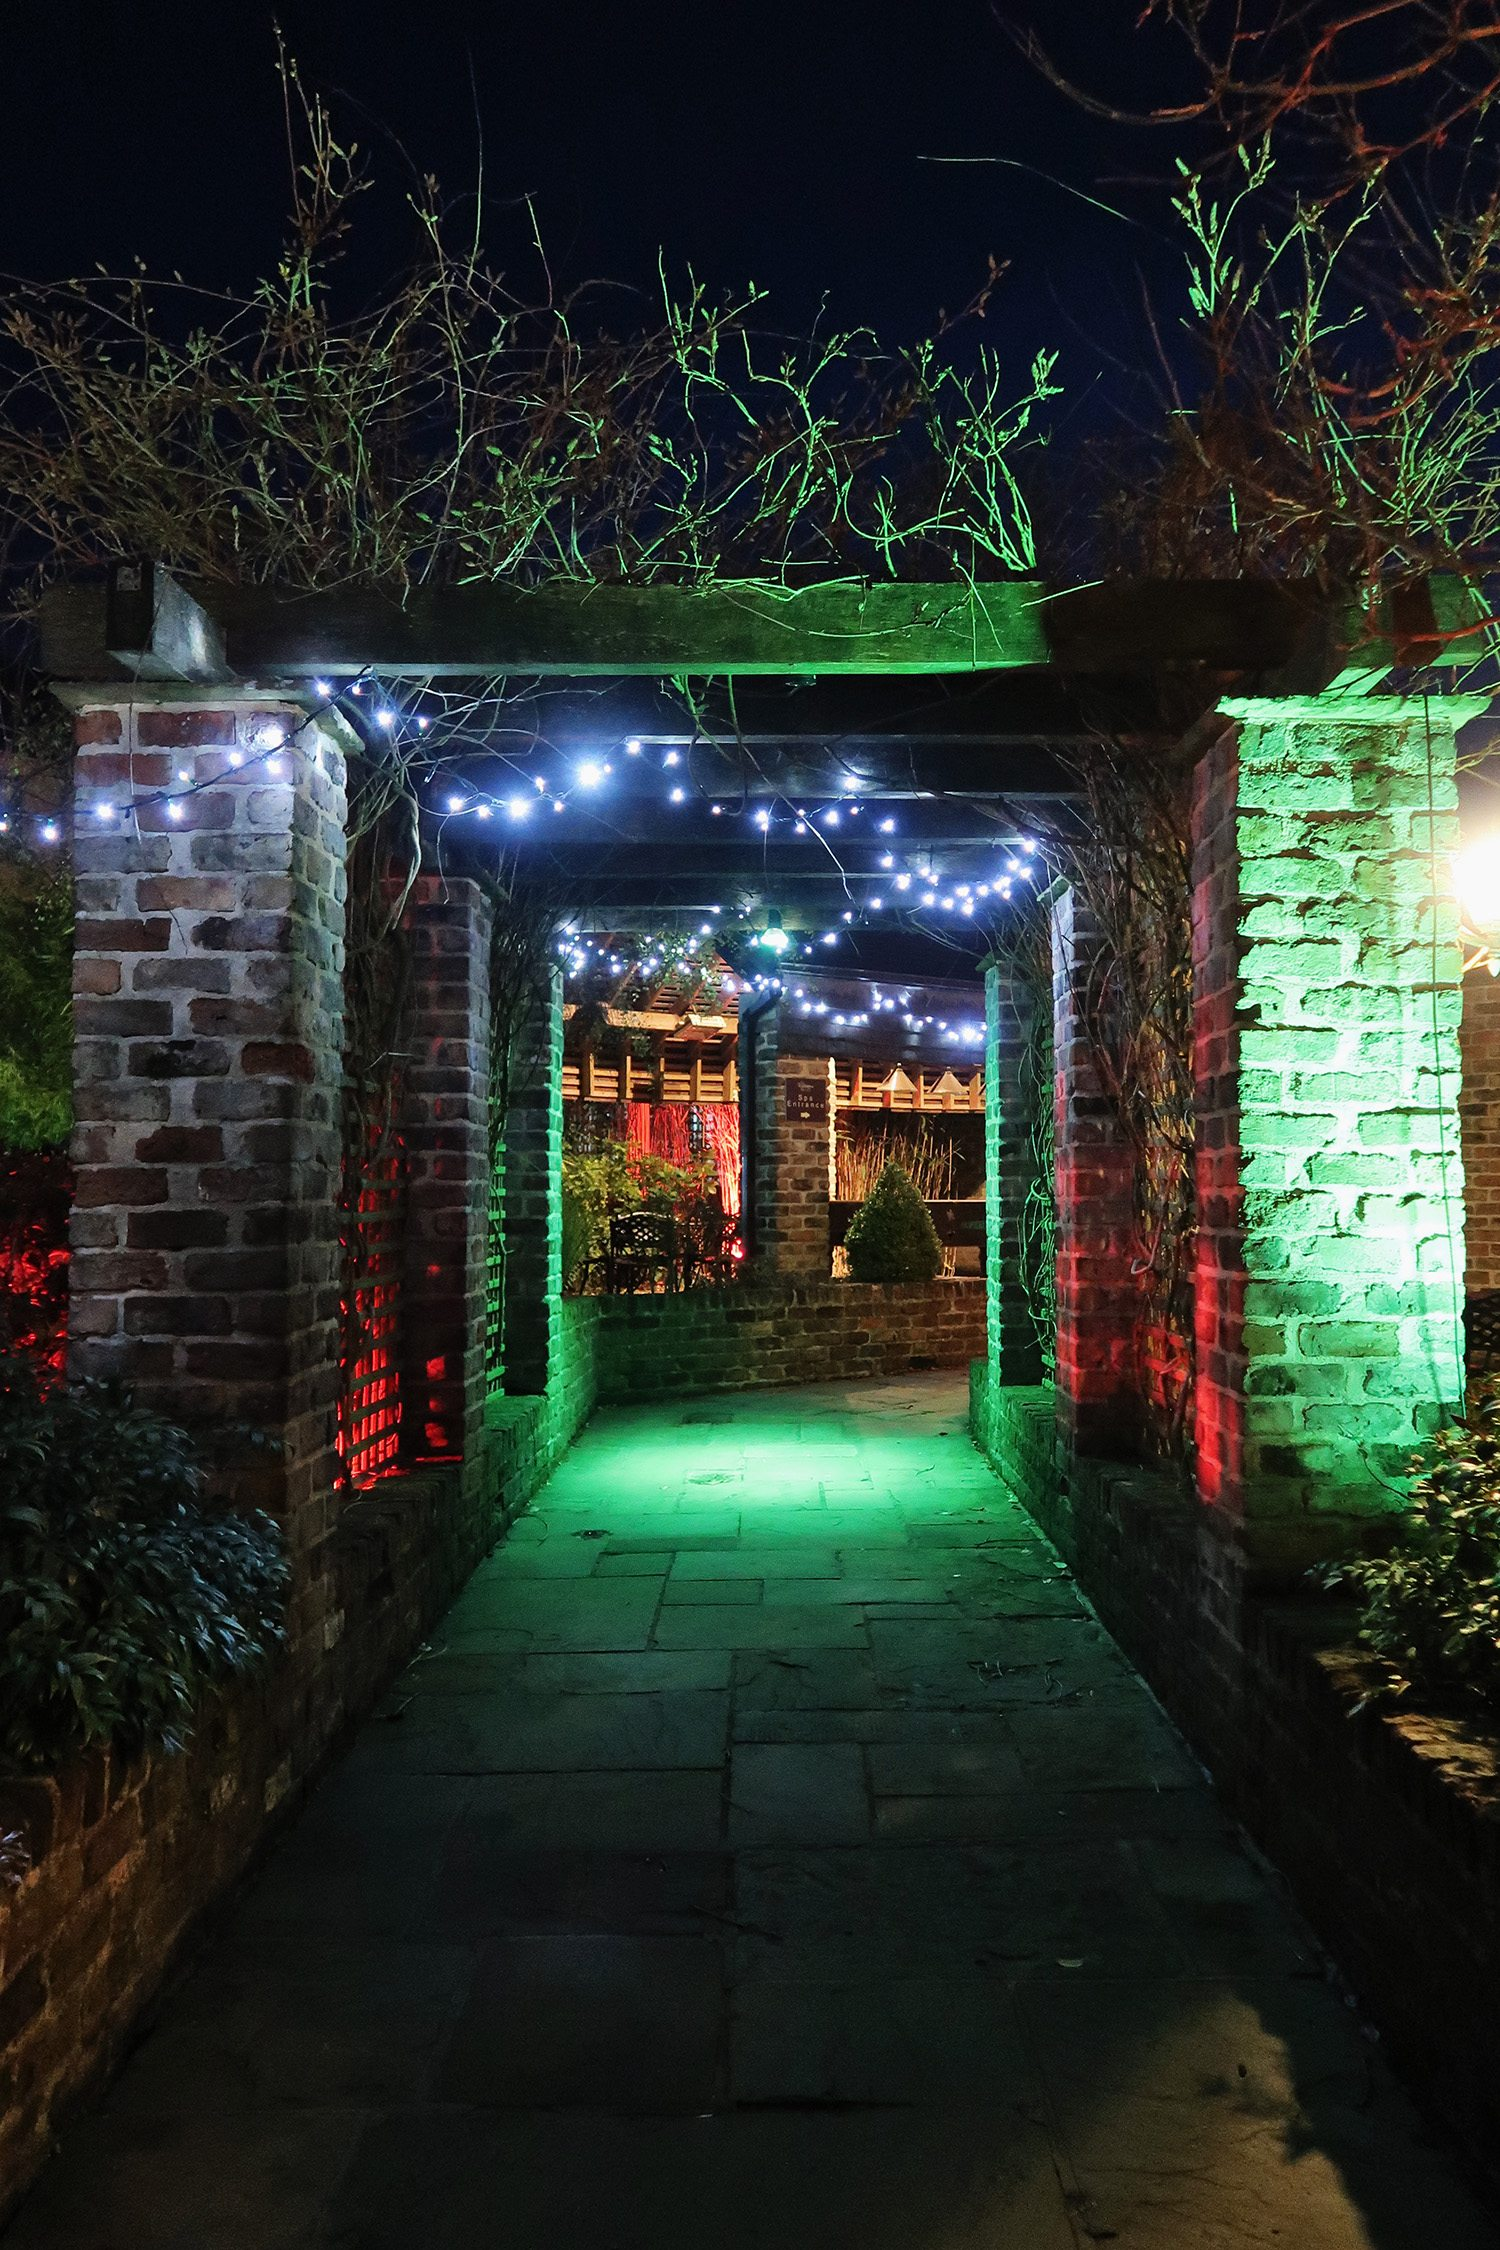 Nightime view of a brick gate entrance lit with coloured lights